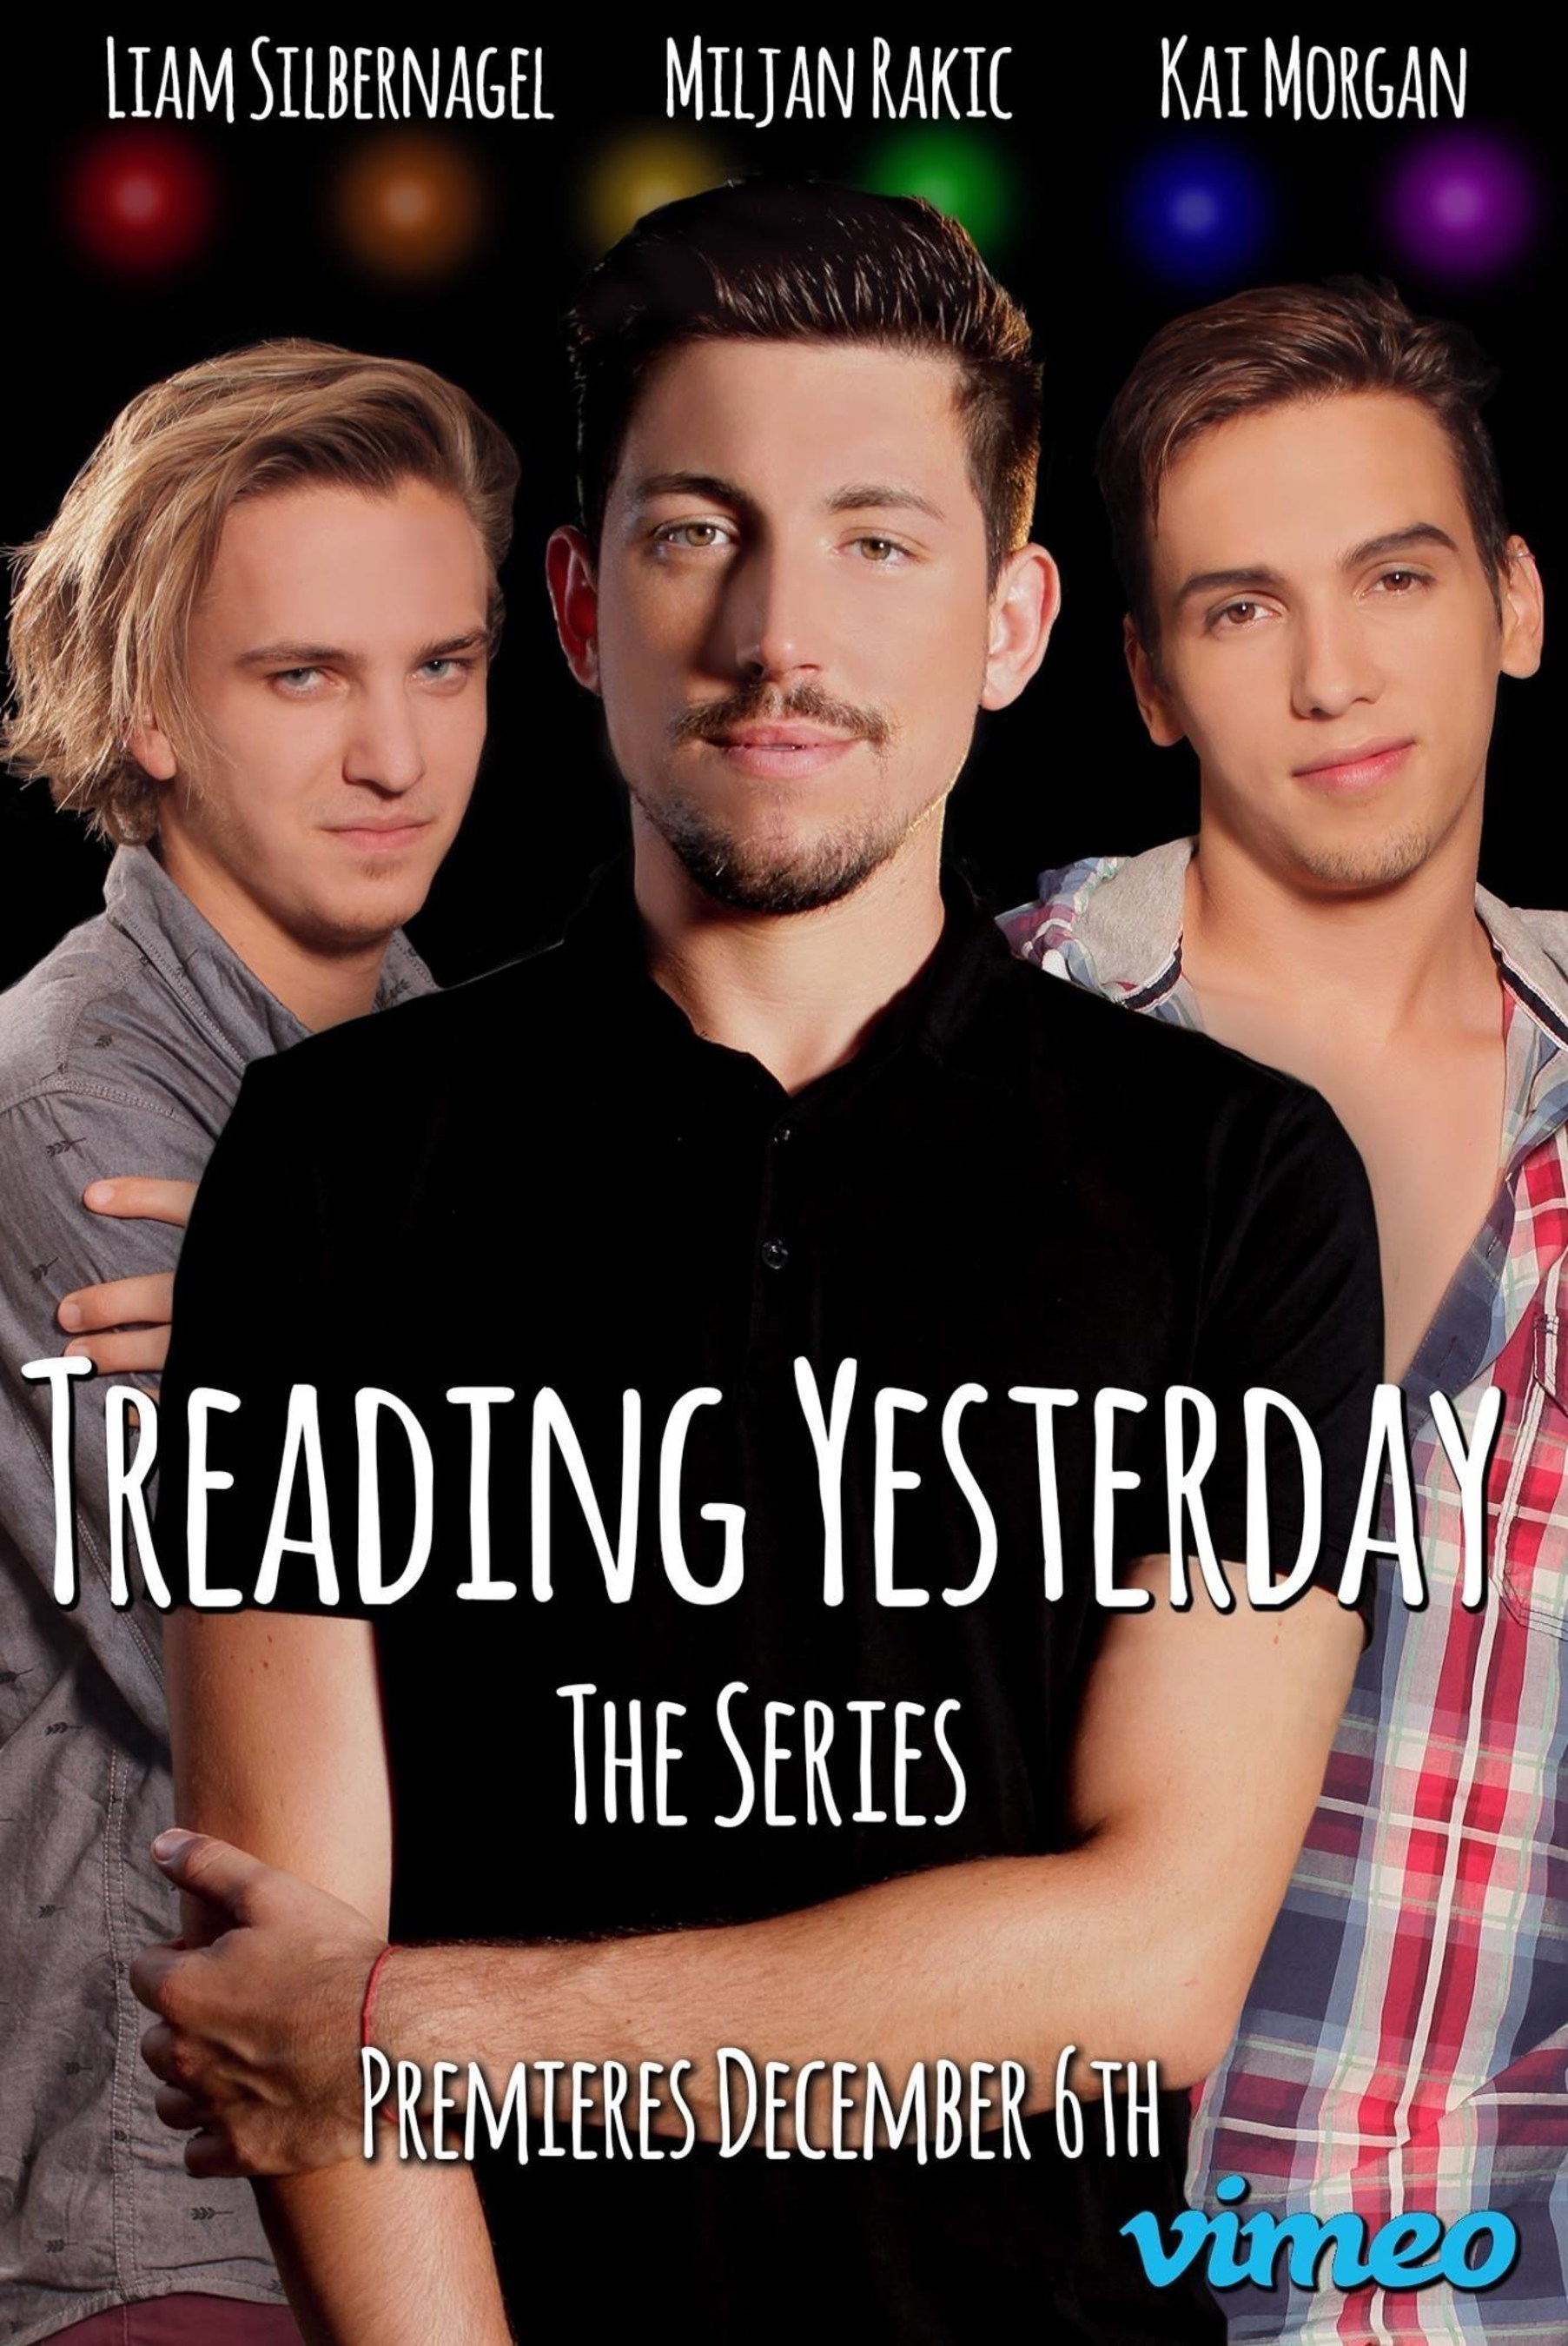 Treading Yesterday, New LGBT Series to Land on Vimeo on Demand